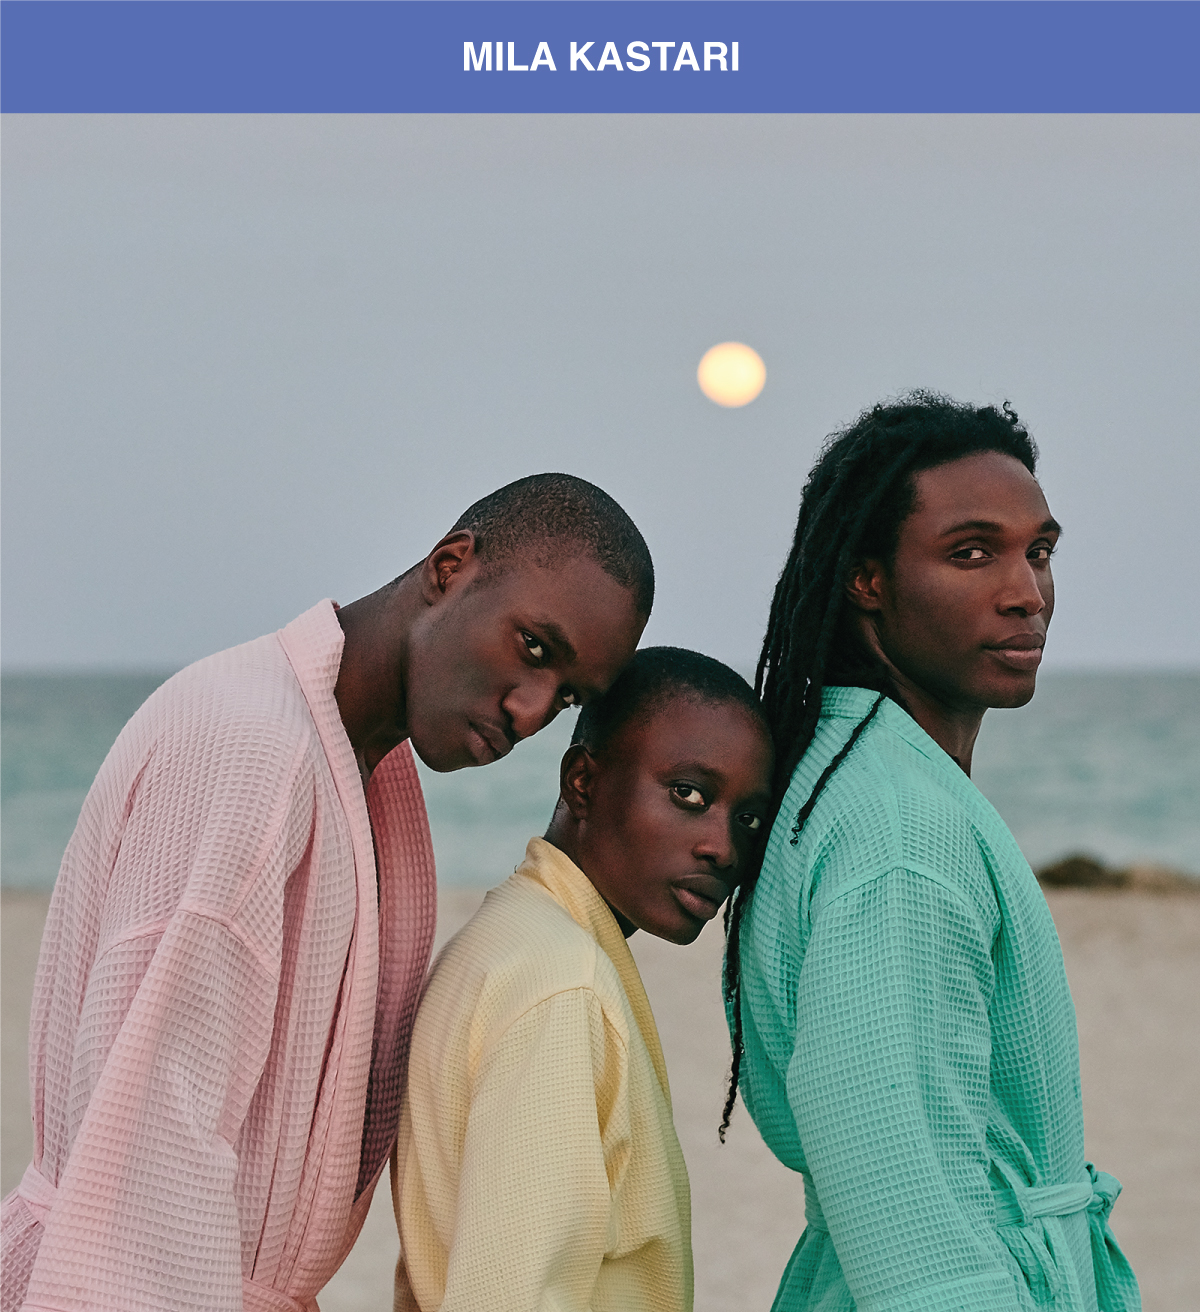 three persons at the beach with pastel color robes